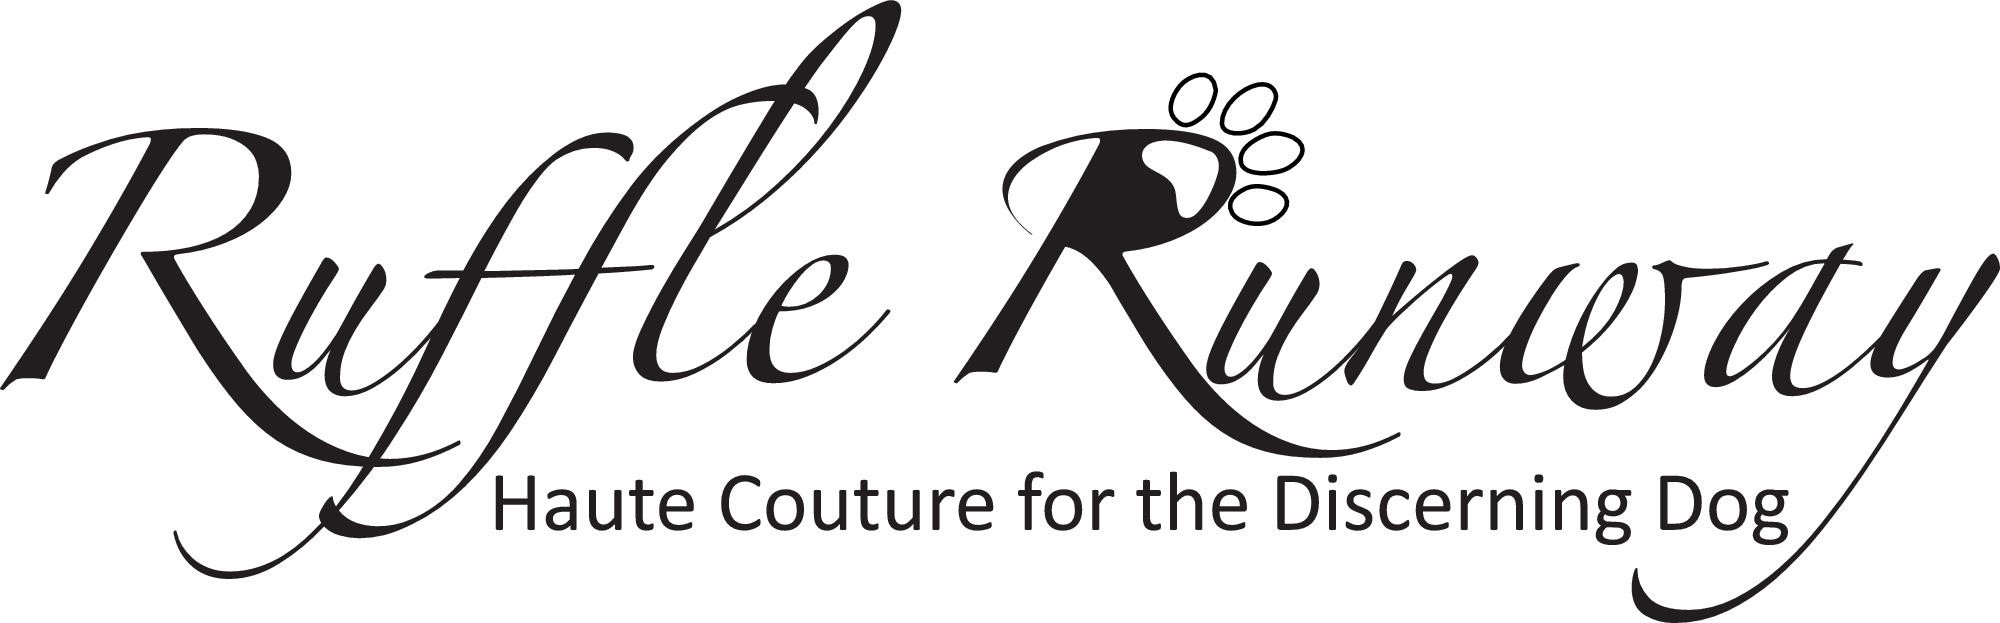 Ruffle Runway dog clothing sponsor f4p